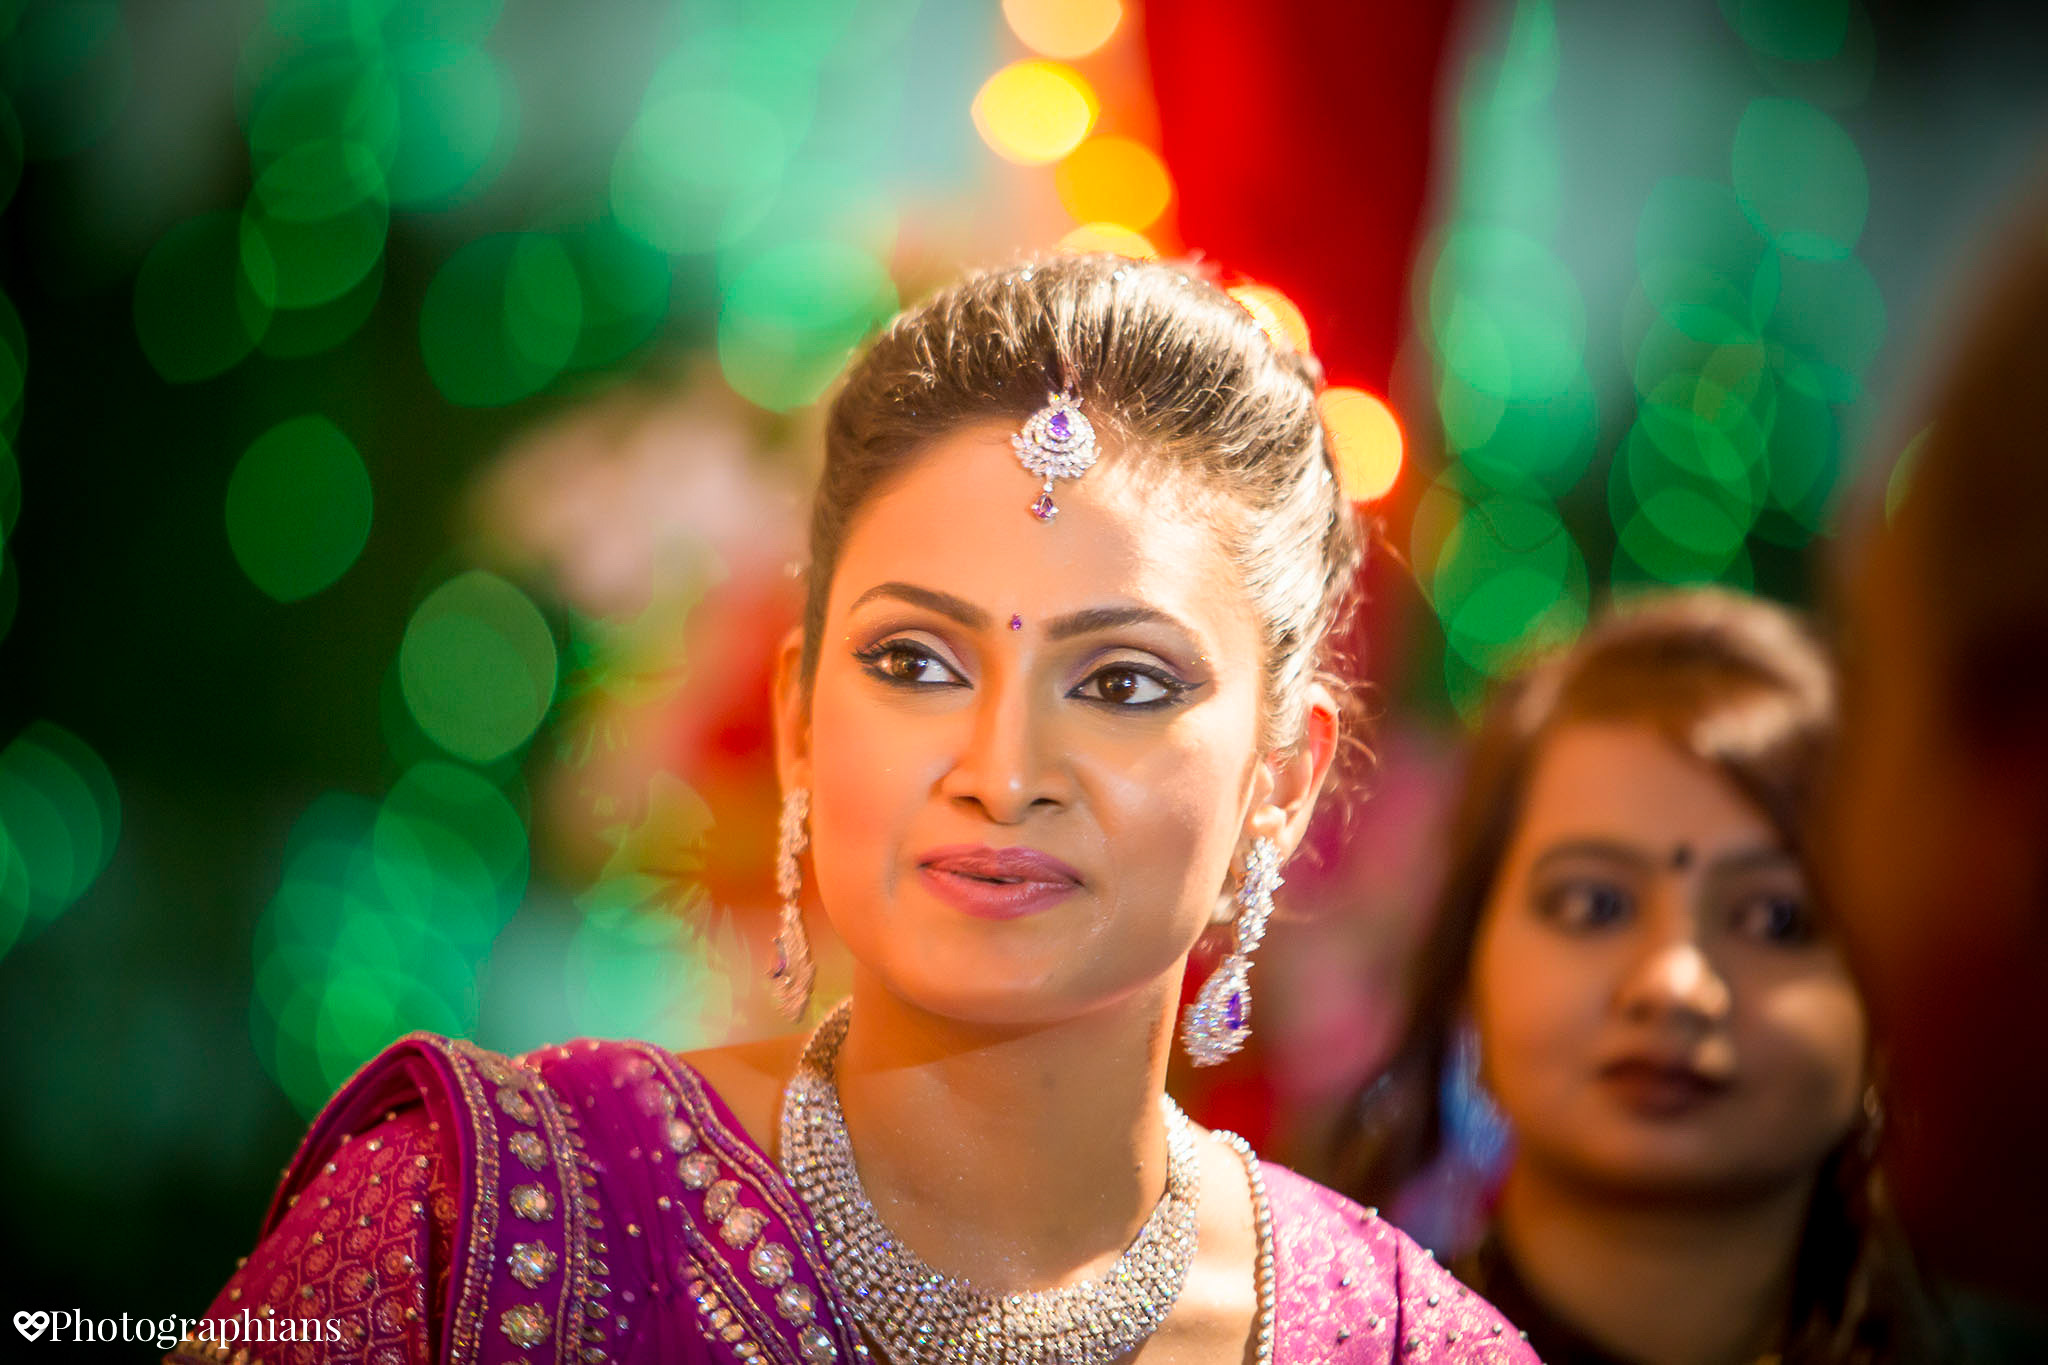 Photographians_Indian_Wedding_Durgapur_058